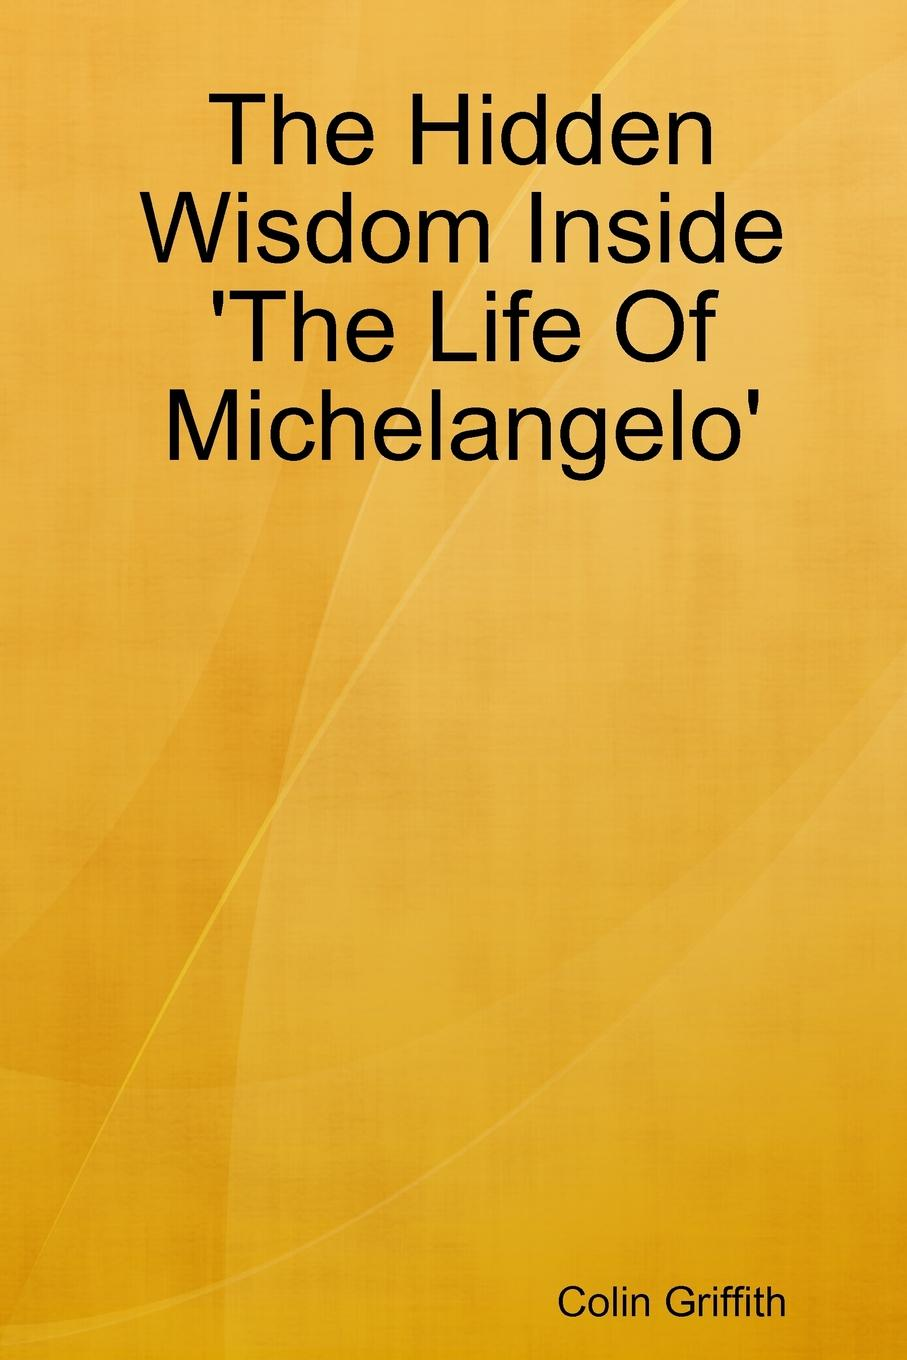 Colin Griffith The Hidden Wisdom Inside .The Life Of Michelangelo. colin nash the history of aquaculture